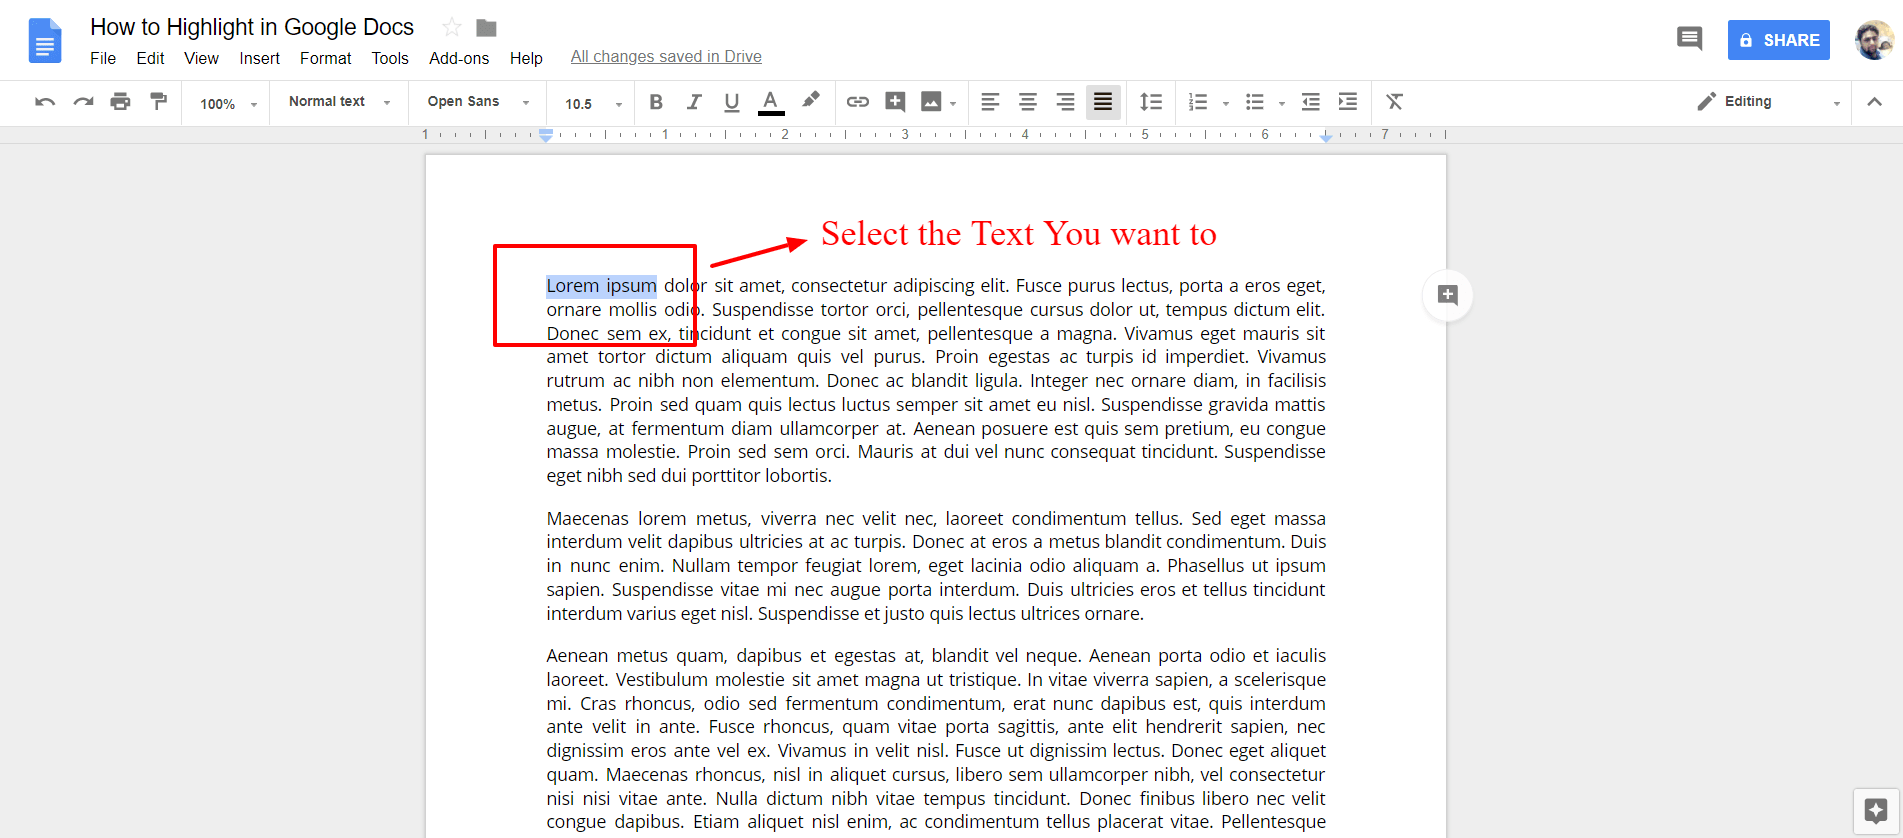 Select the text you want to highlight - Google Docs